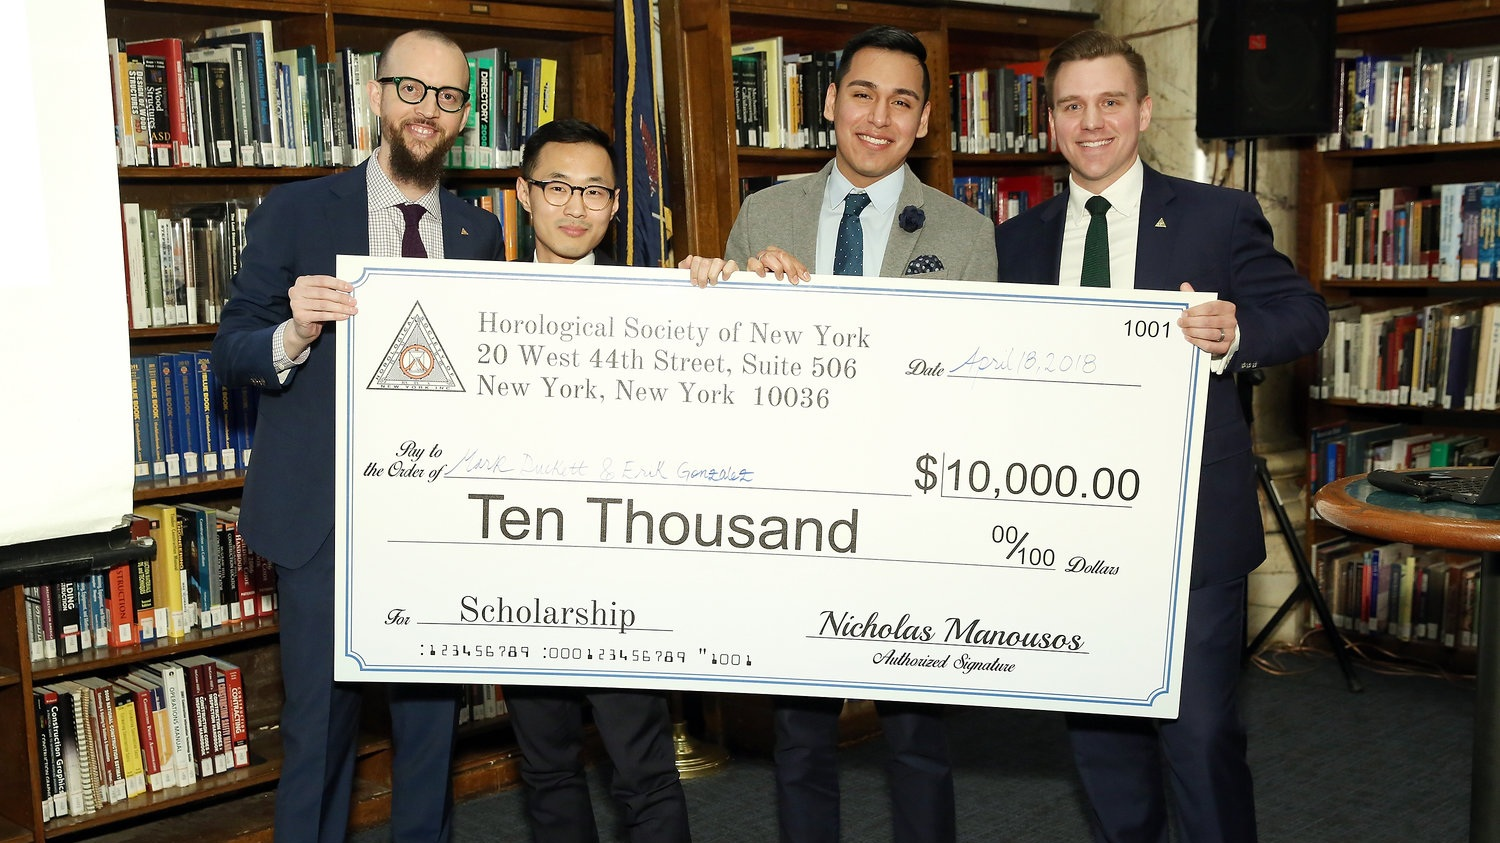 Nicholas Manousos (HSNY's President, left) and Steve Eagle (HSNY's Director of Education, right) presenting the 2018 Henry B. Fried Scholarship to Mark Duckett (middle left) and Erik Gonzalez (middle right), students at the Patek Philippe New York Watchmaking School .